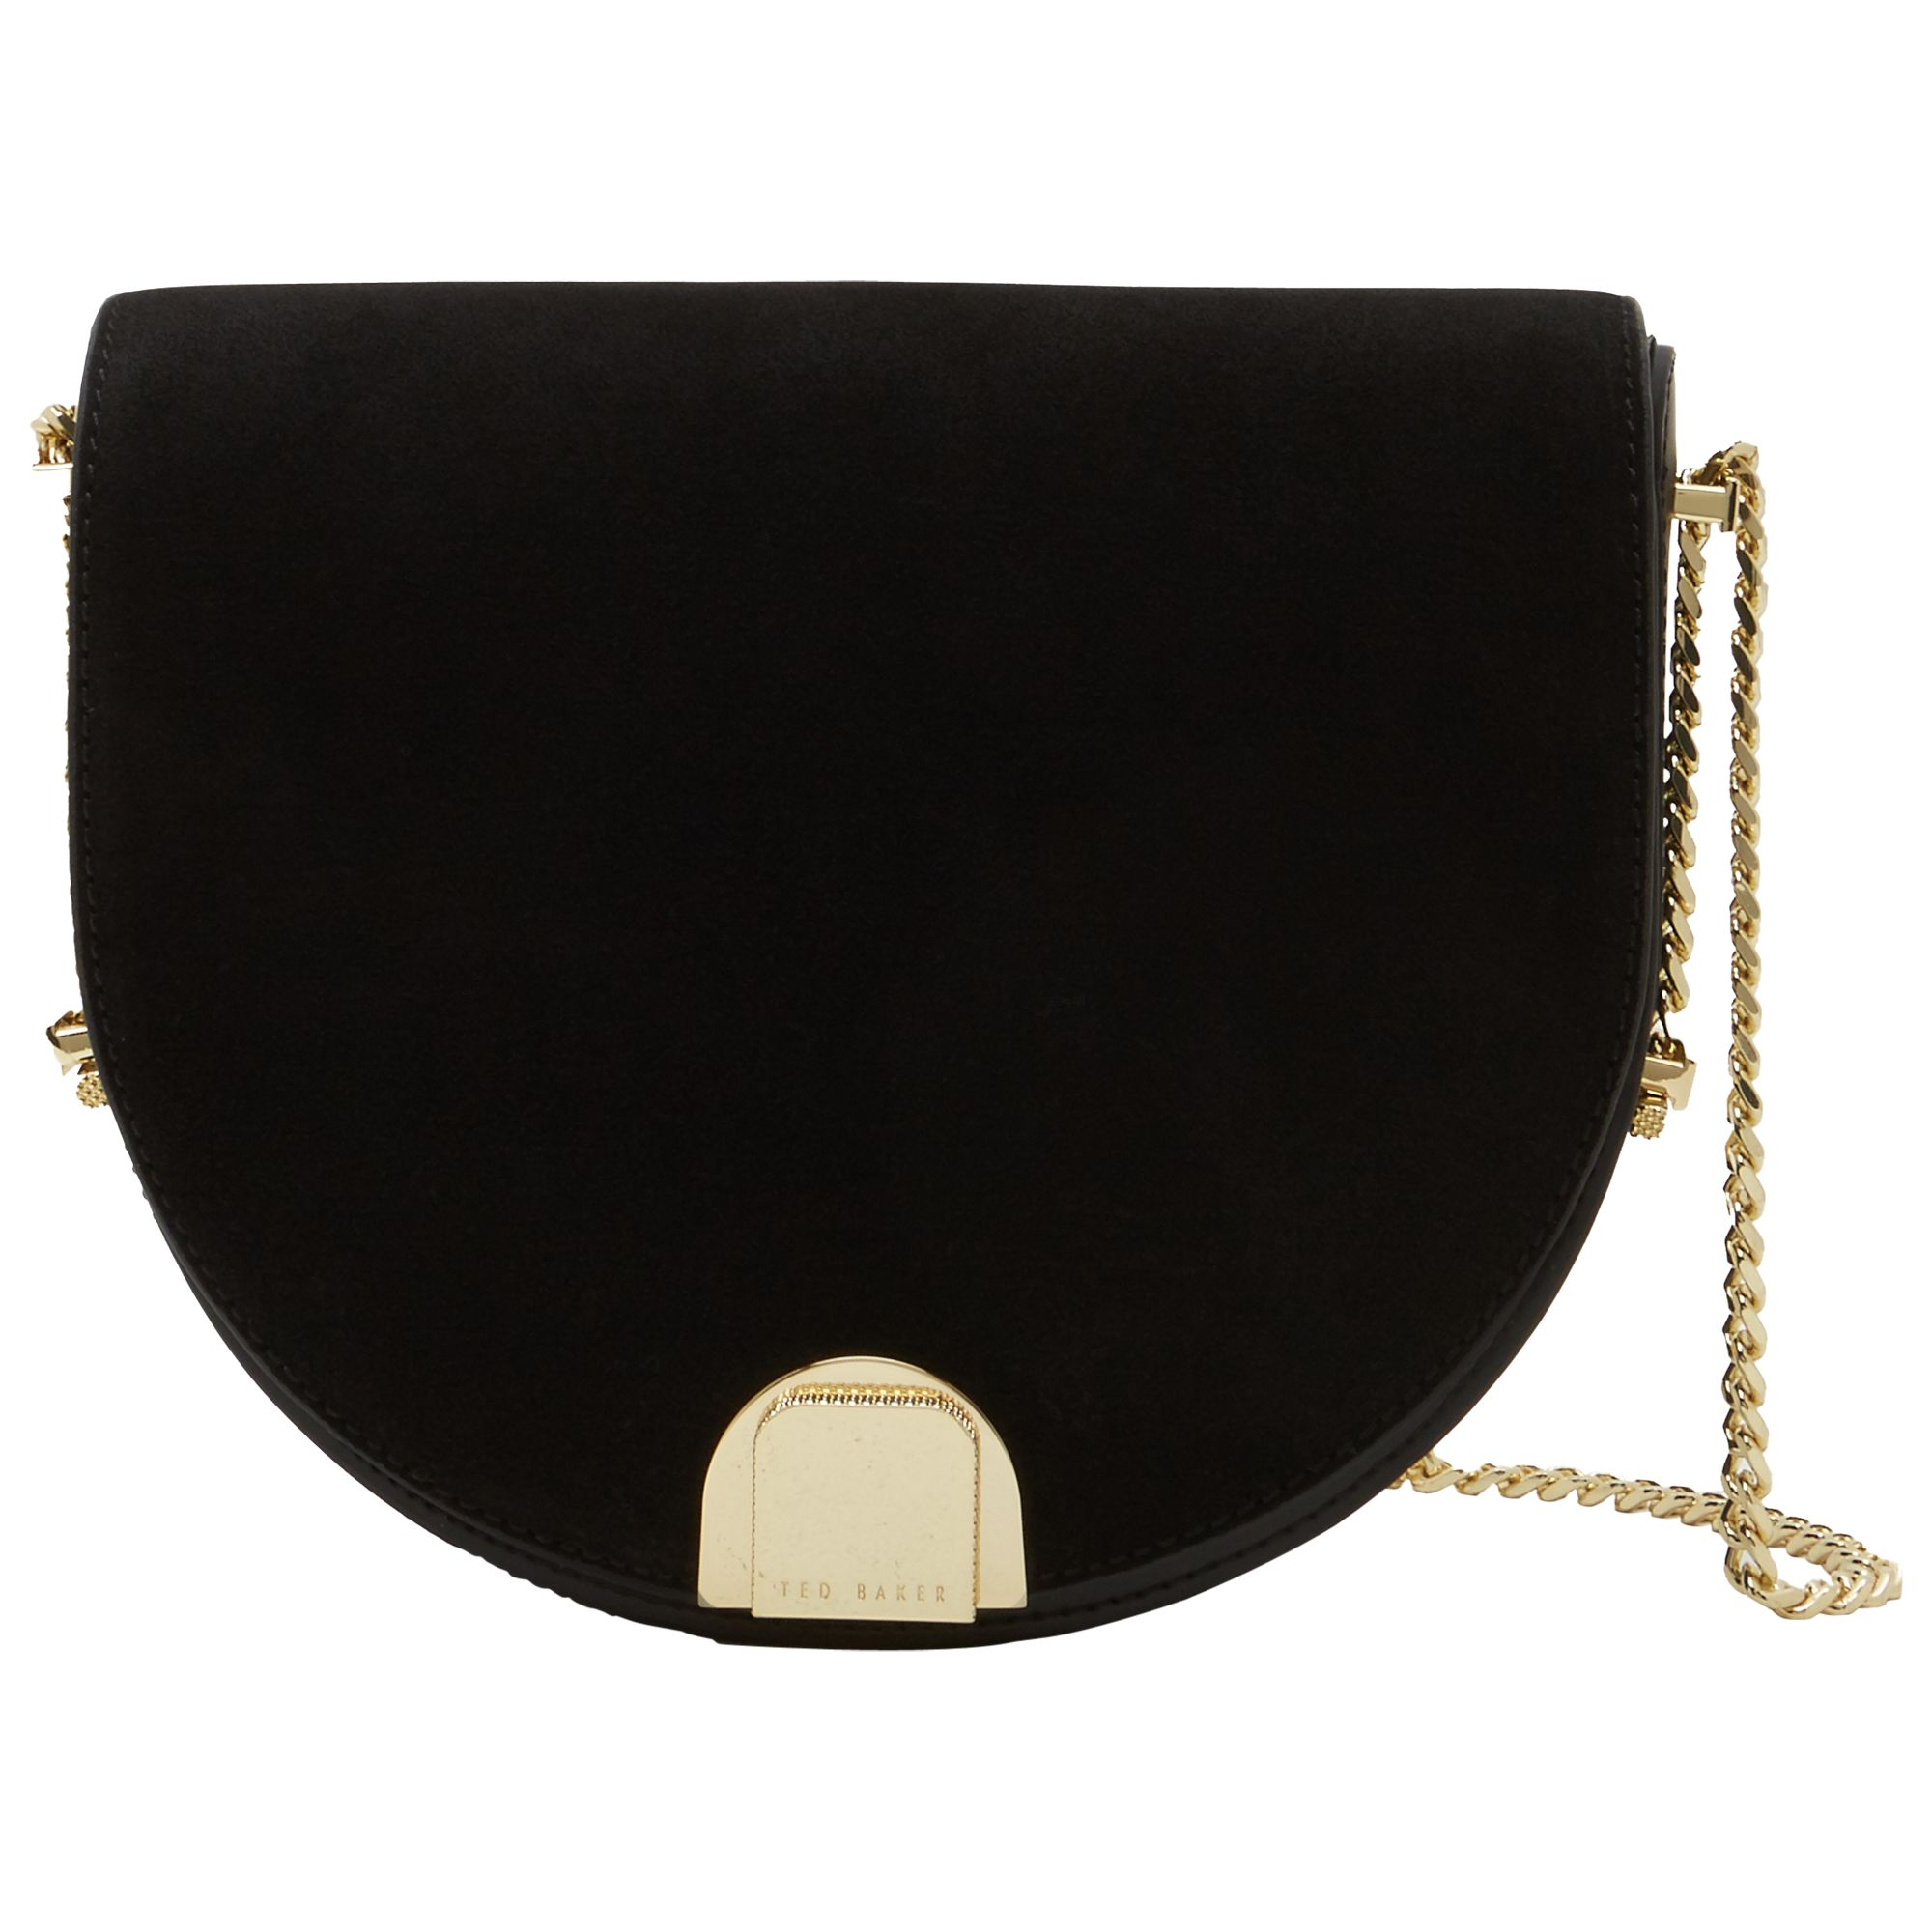 9071c5ca70 Ted Baker Flossi Mini Suede Moon Bag at John Lewis & Partners